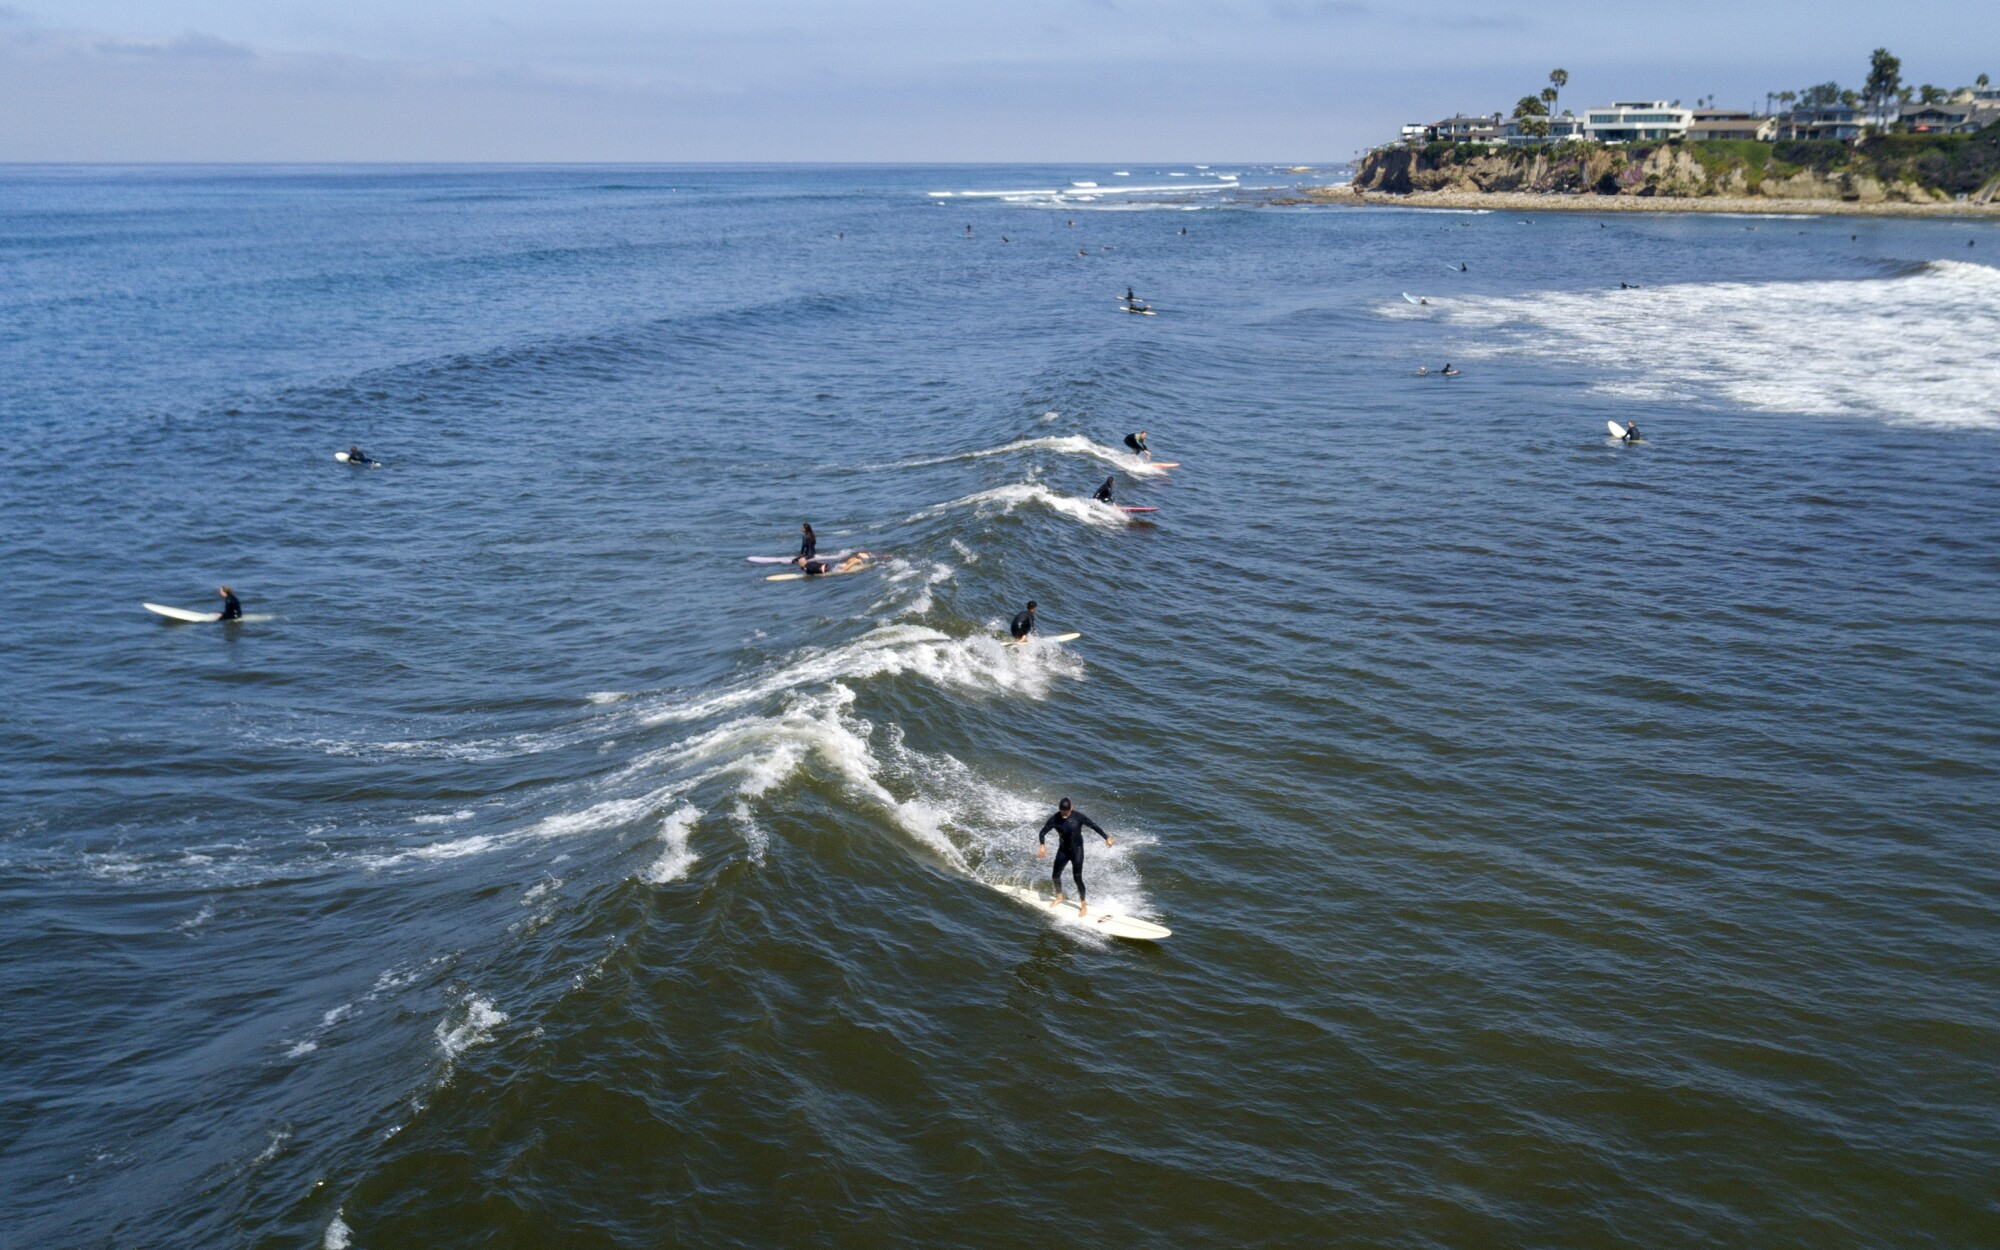 A surfer rides a wave in Tourmaline Surf Park in Pacific Beach after local beaches reopened to activities such as walking, running, and surfing on April 27, 2020. Beaches have been closed for several weeks due to the coronavirus. The boardwalks are still off limits and gathering on the sand is not allowed.